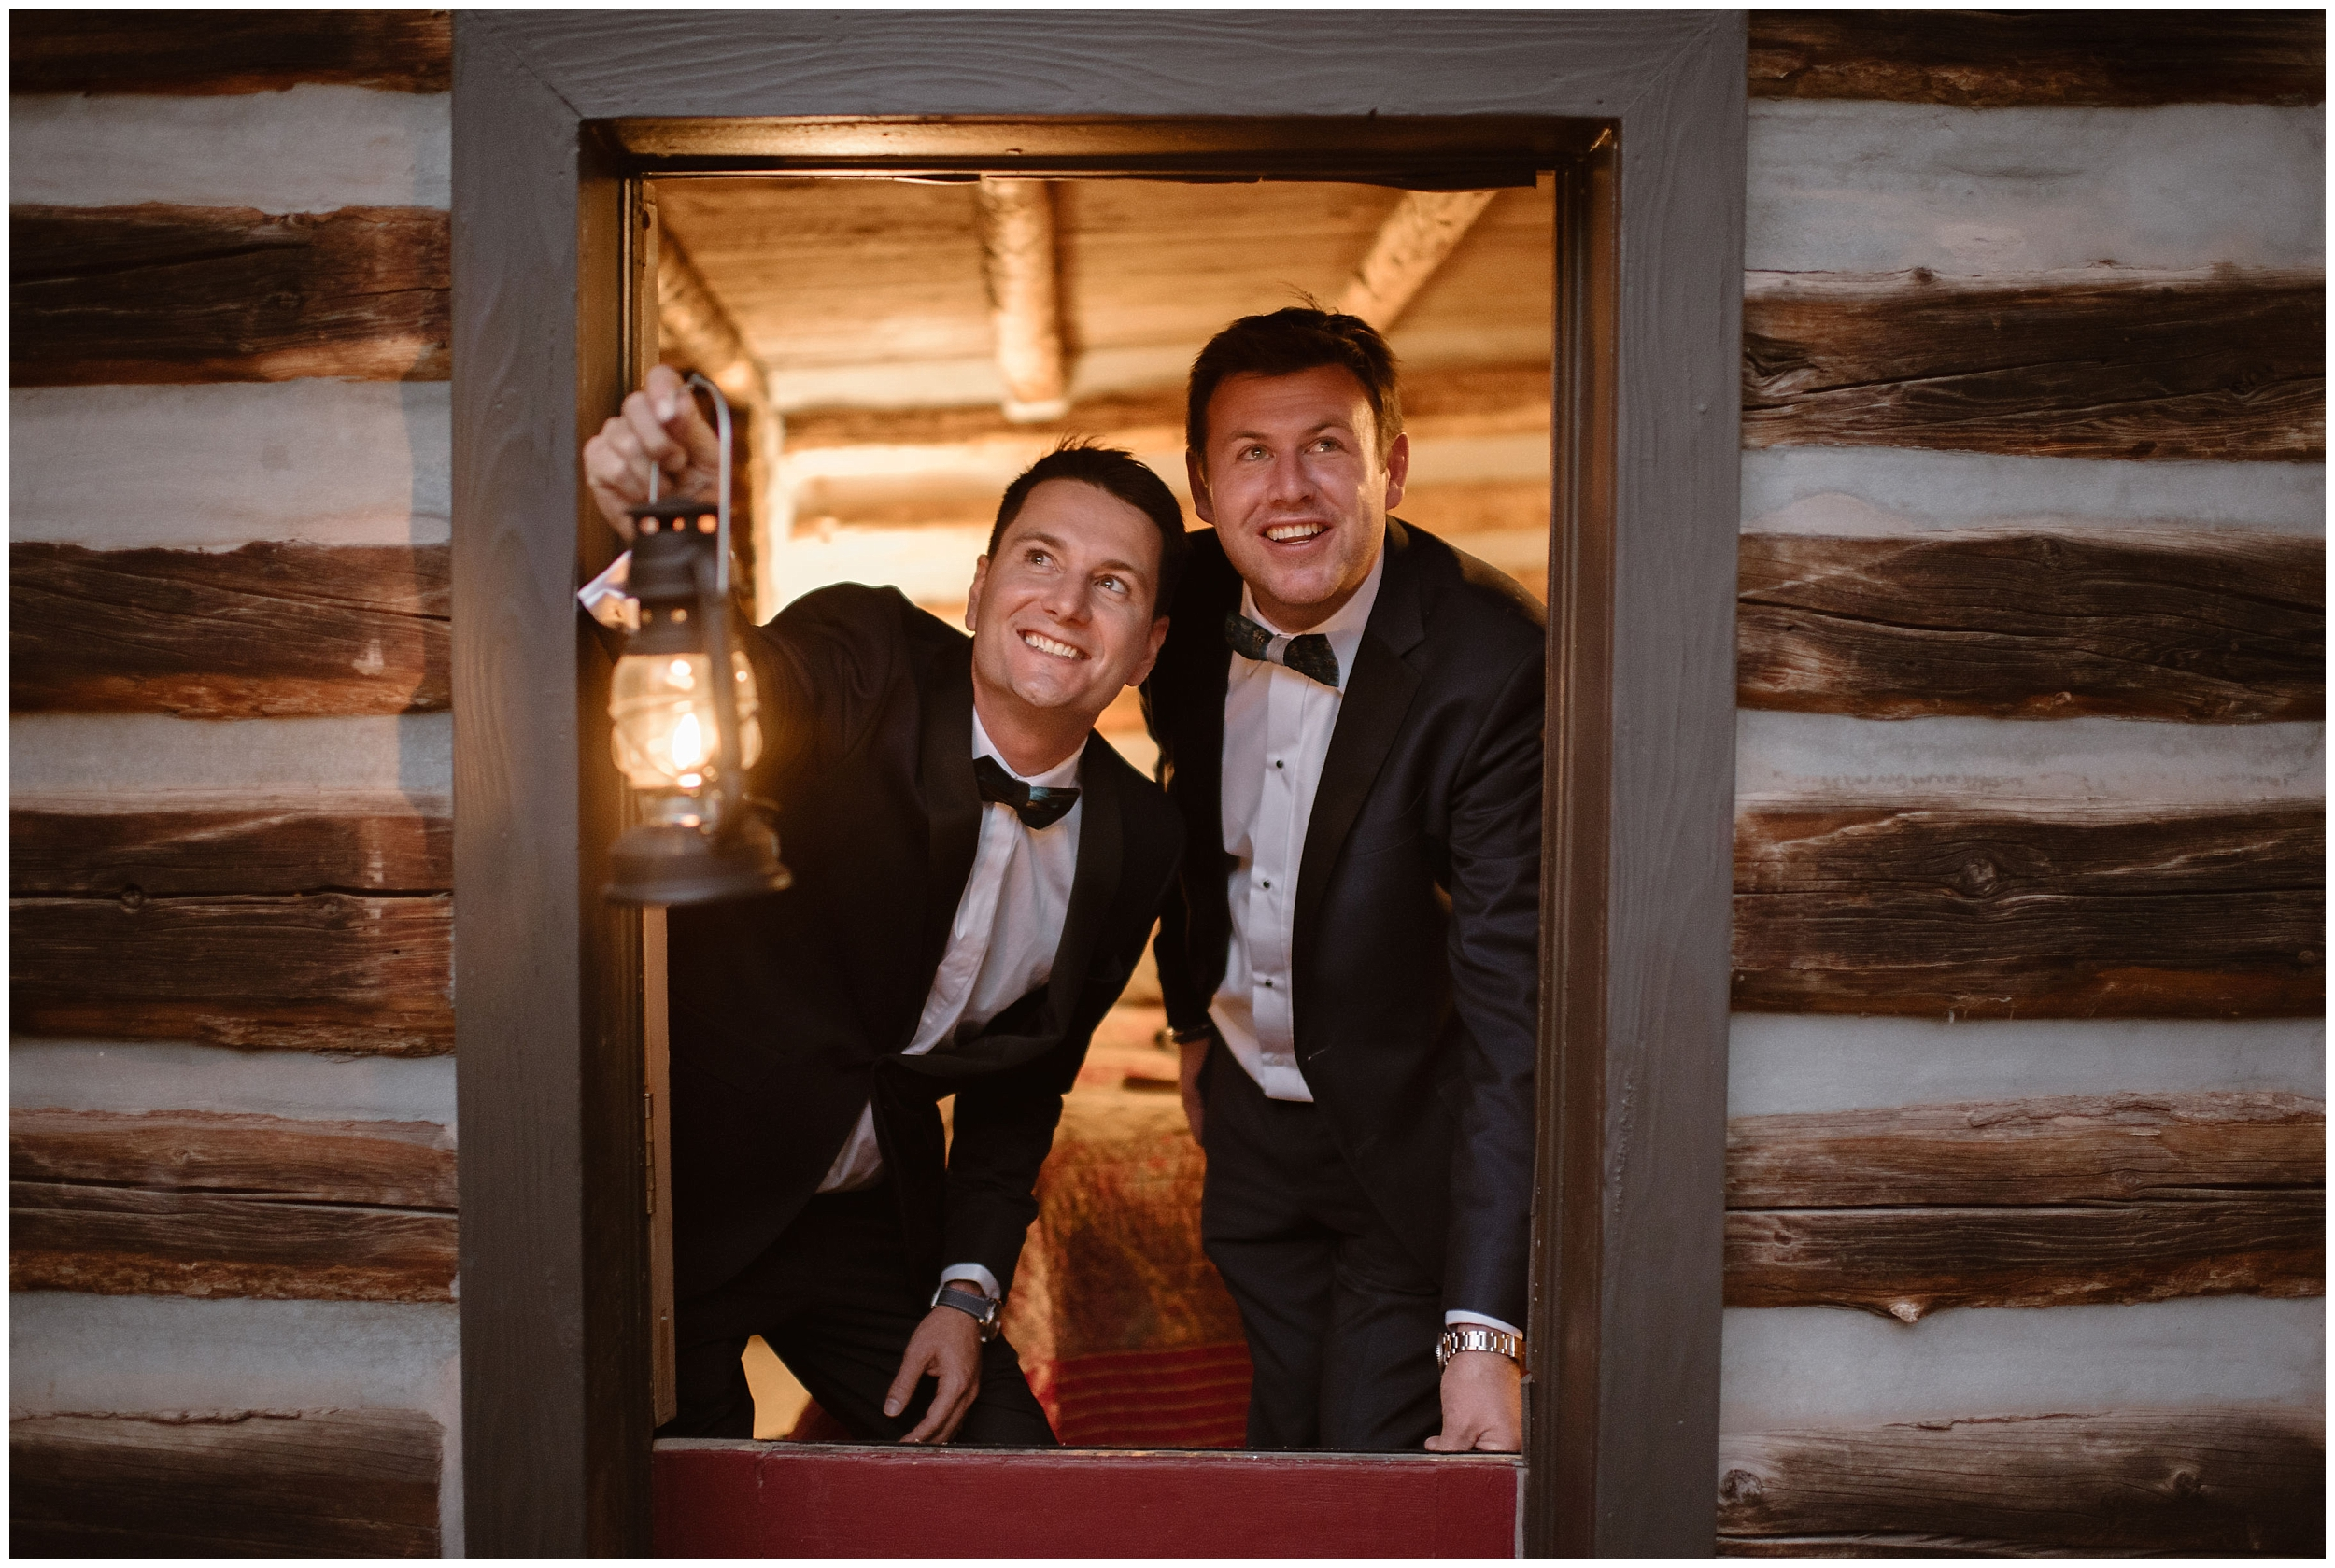 Brian and Ernie lean out of their VRBO cabin door holding a lantern, their faces illuminated as the setting sun closes in on their perfect Colorado mountain wedding.